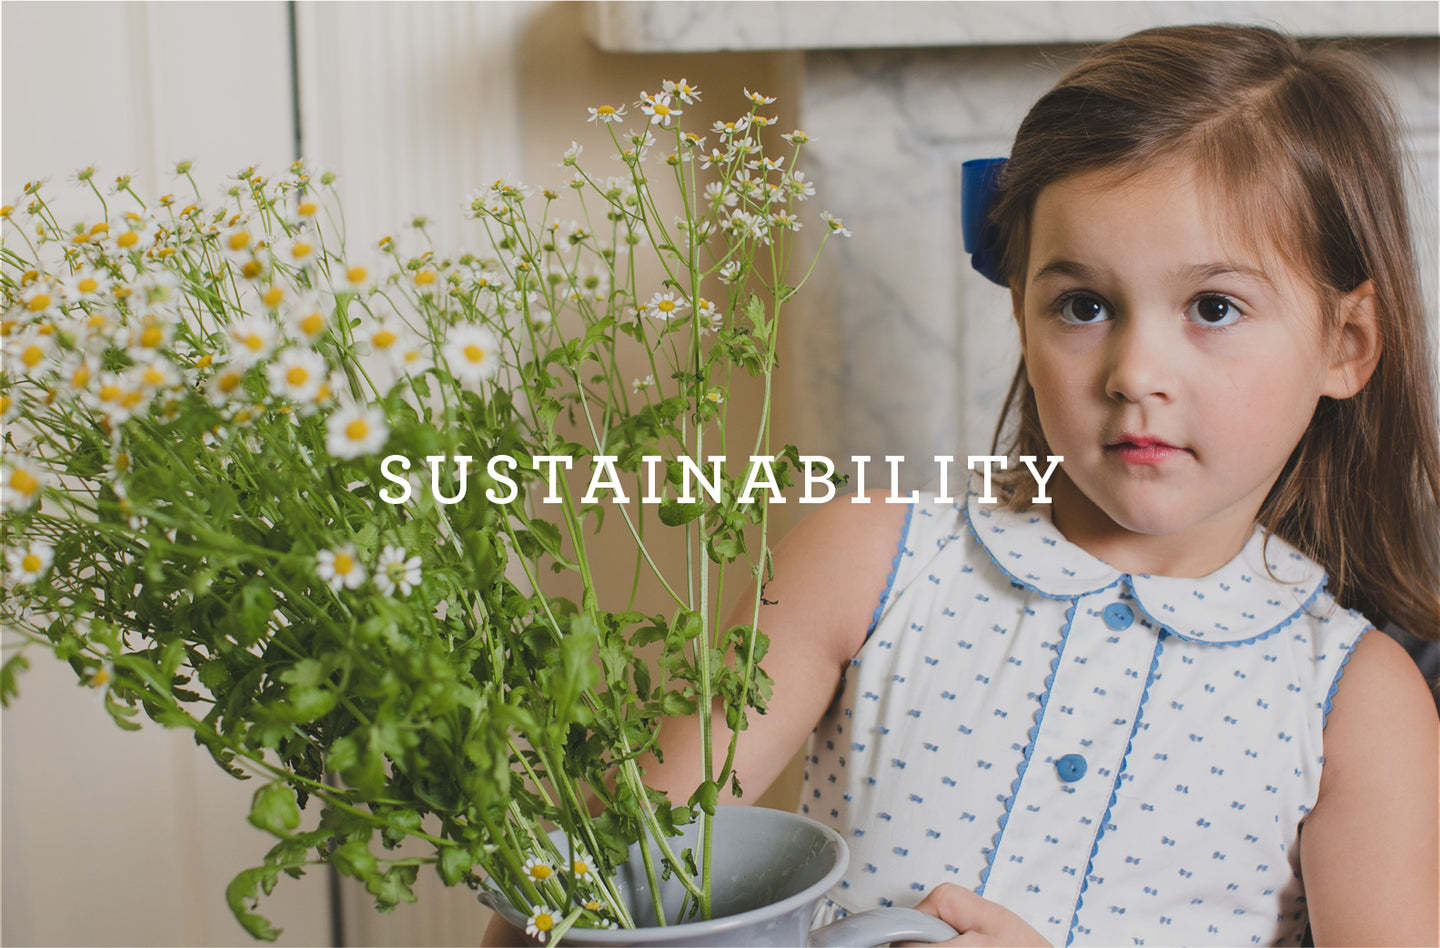 Amaia's compromise with sustainability